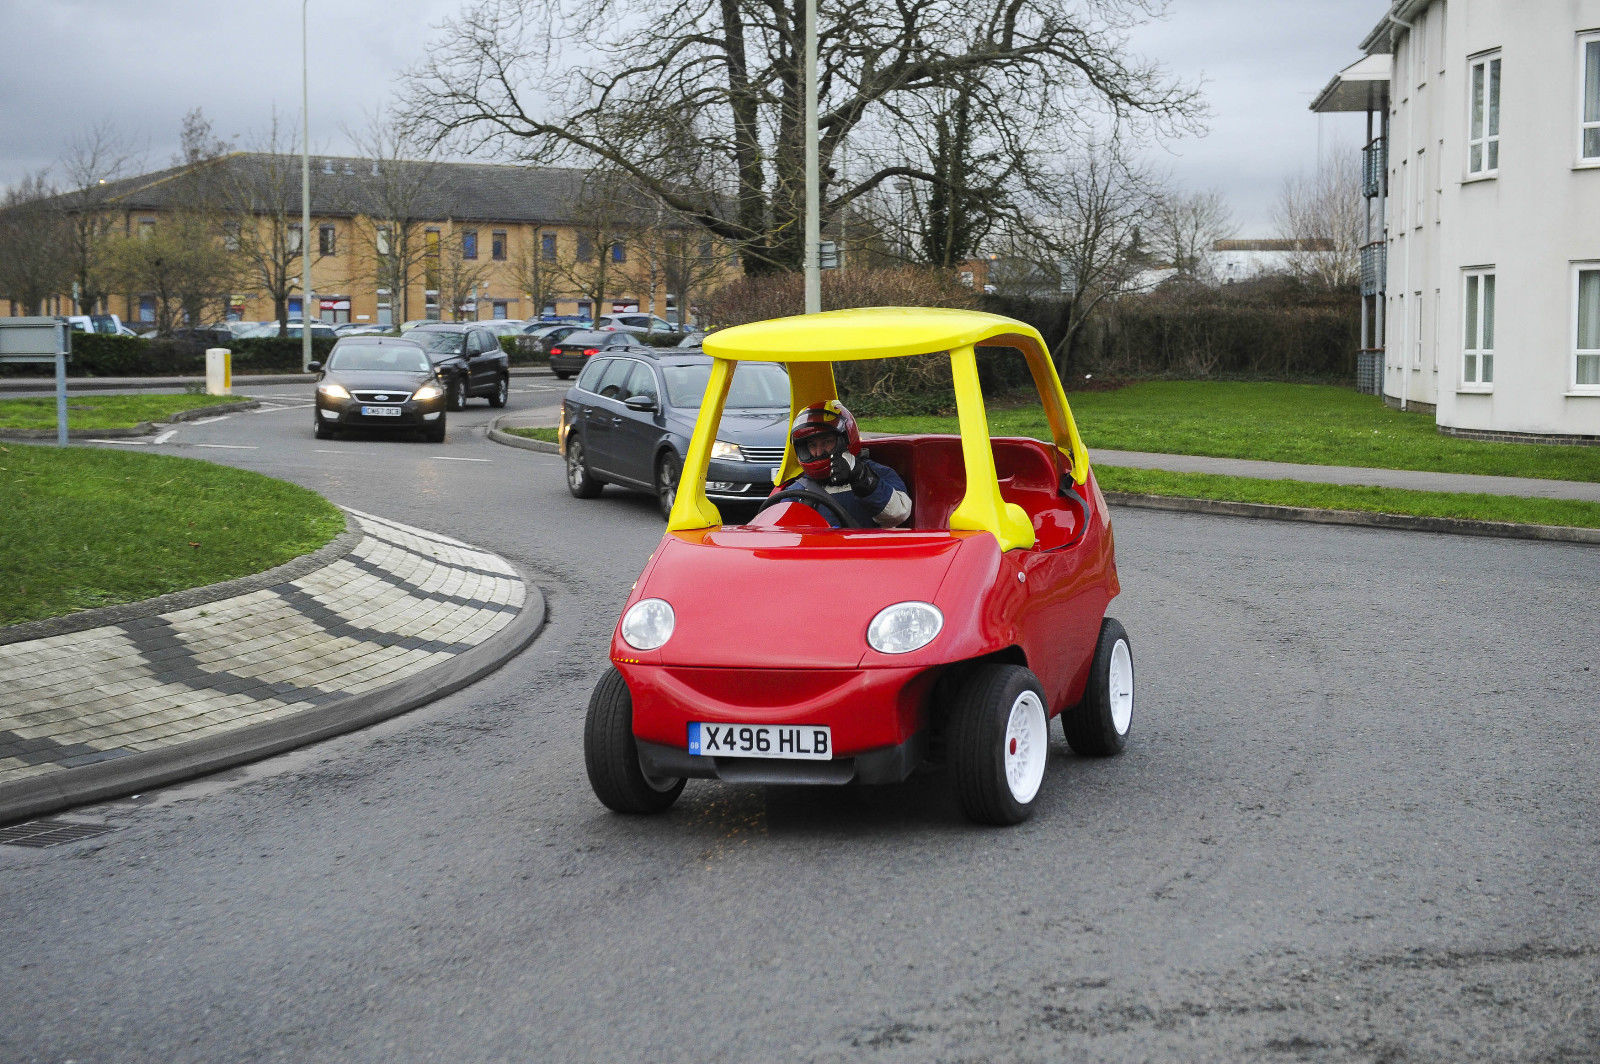 Your favorite childhood toy car is now real and you can drive it